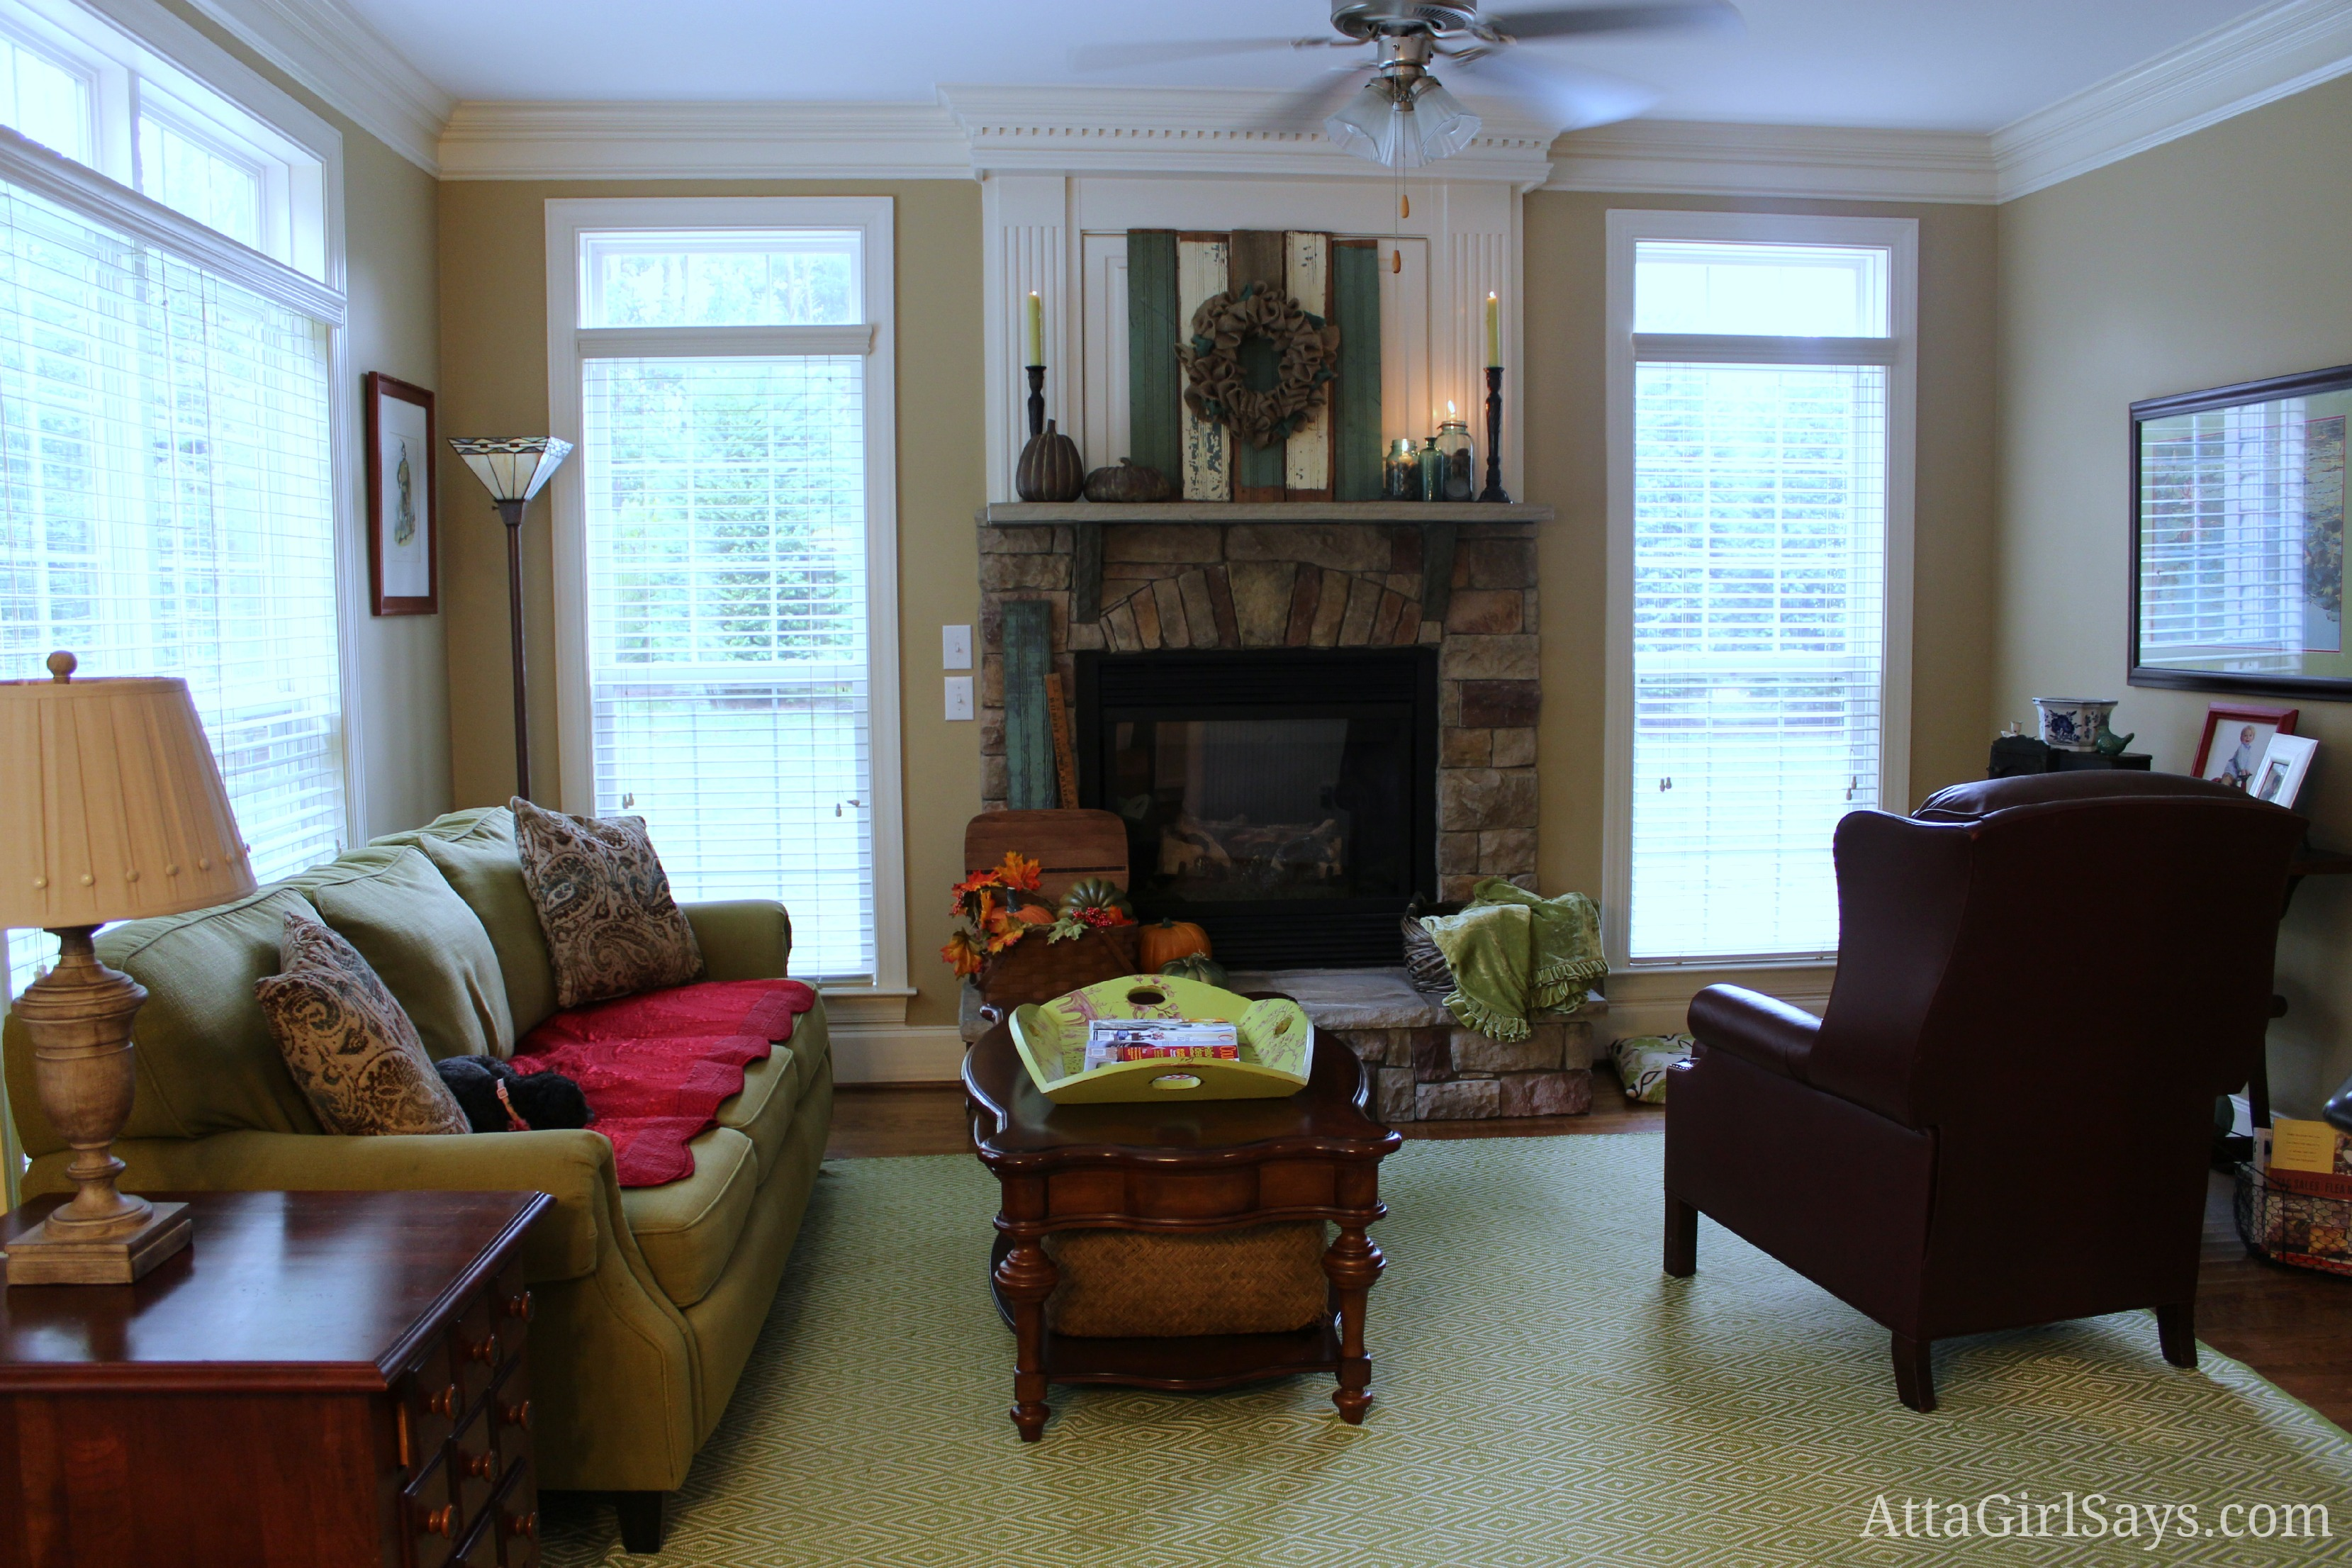 Rustic recycled natural fall fireplace mantel ideas for Keeping room ideas